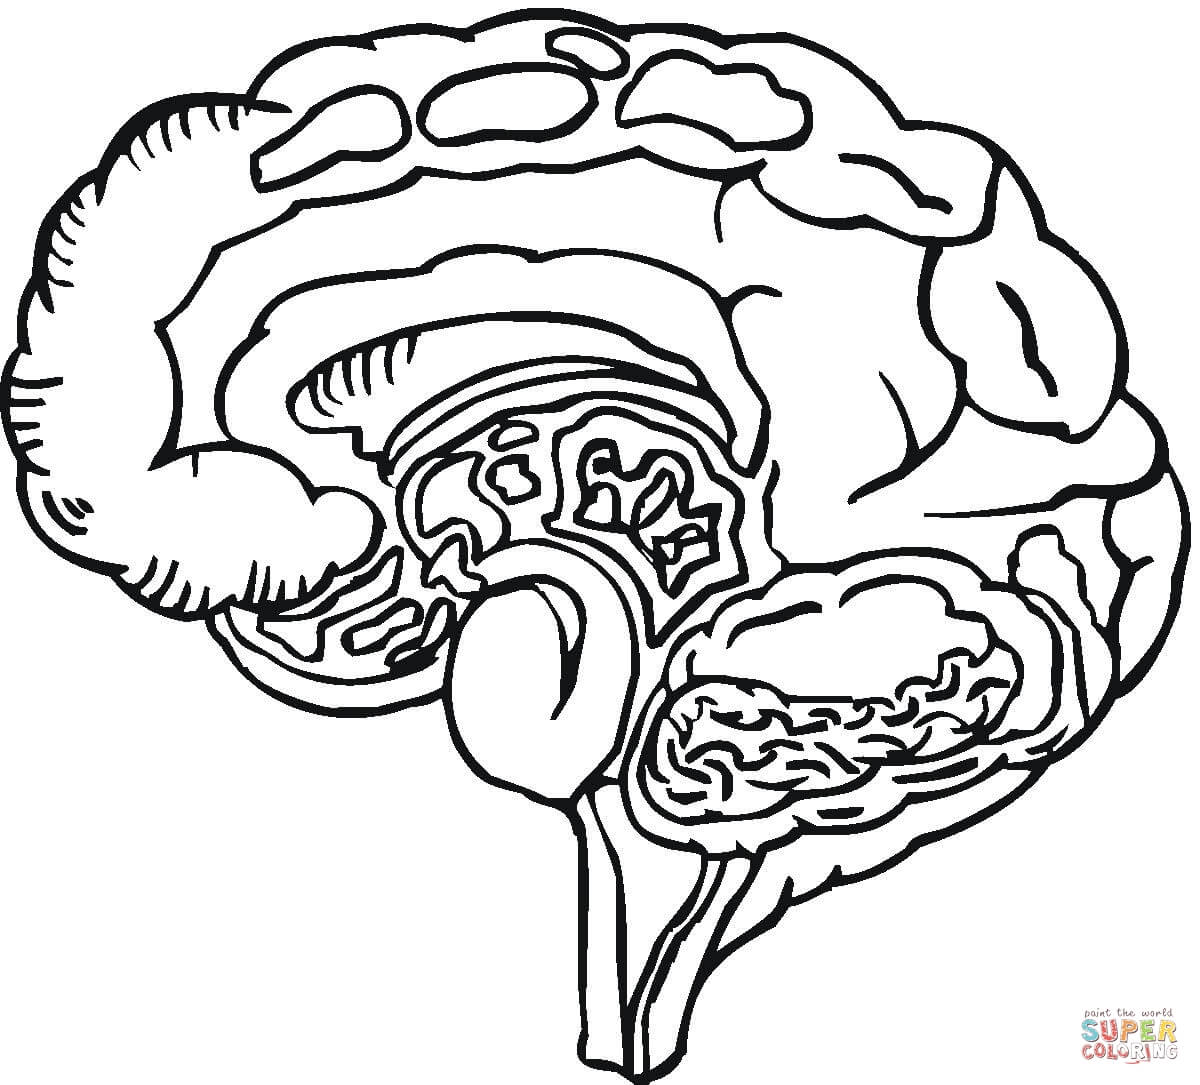 1200x1085 Pretentious Inspiration Brain Anatomy Coloring Pages Printable